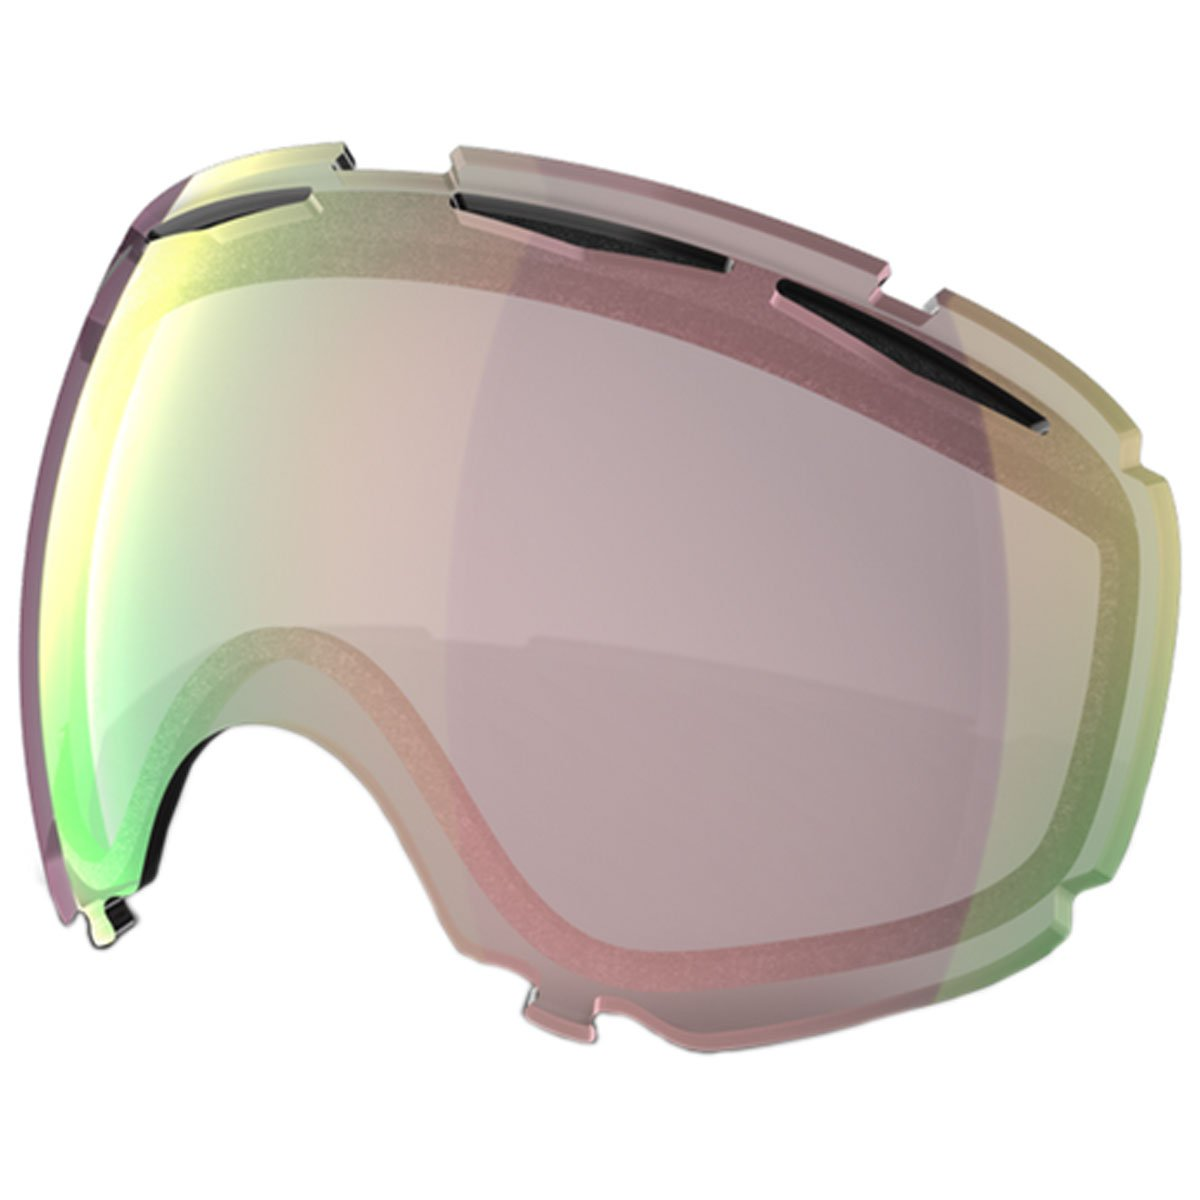 Oakley Canopy Replacement Lens, Vr50 Pink Iridium by Oakley